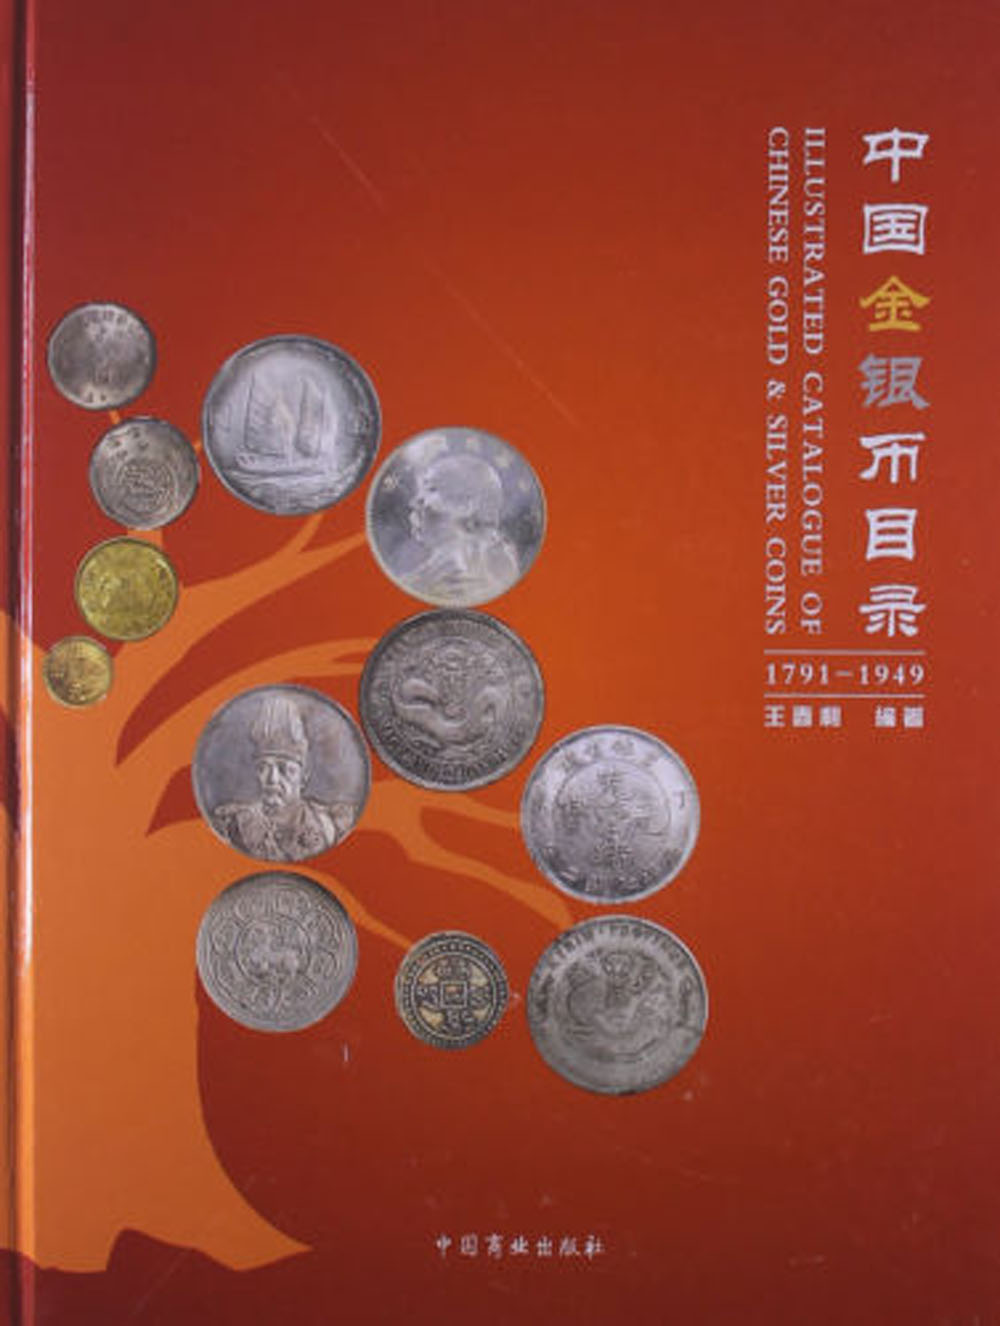 Illustrated catalogue of chinese gold&silver coins 1791-1949 editors of sports illustrated editors of sports illustrated sports illustrated alabama football